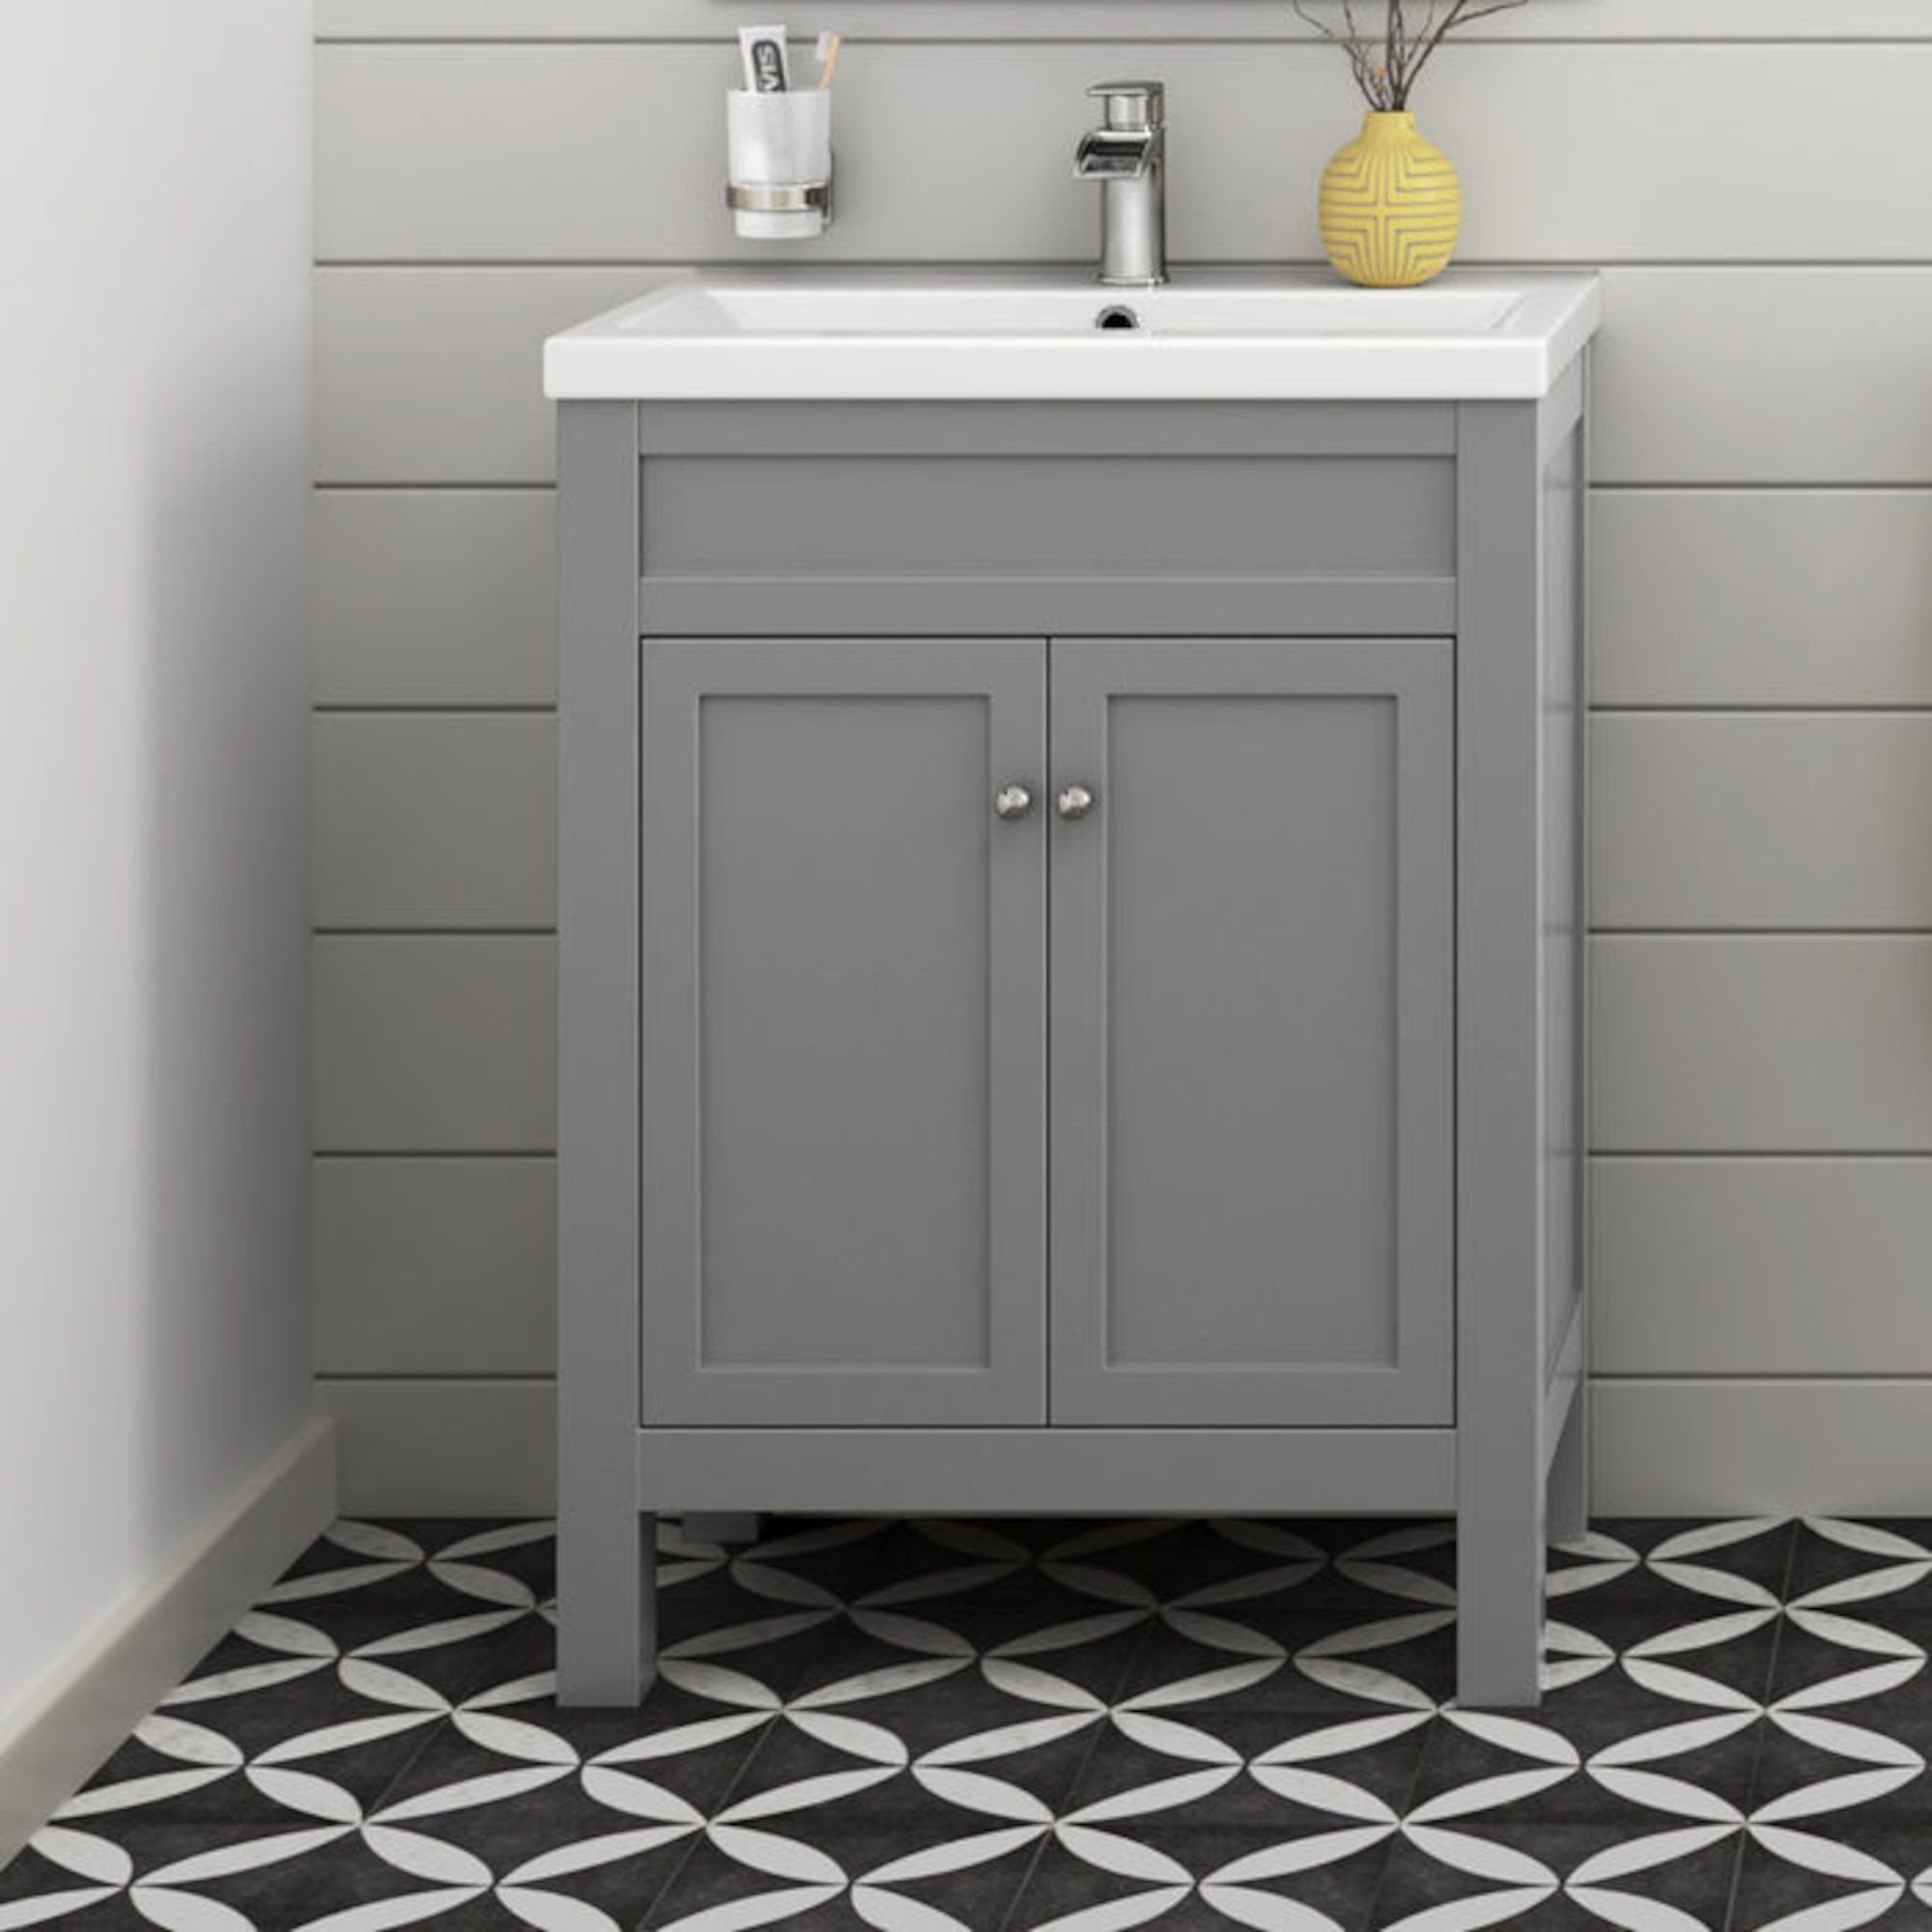 600mm Melbourne Earl Grey Vanity Unit Denver Tap Floor